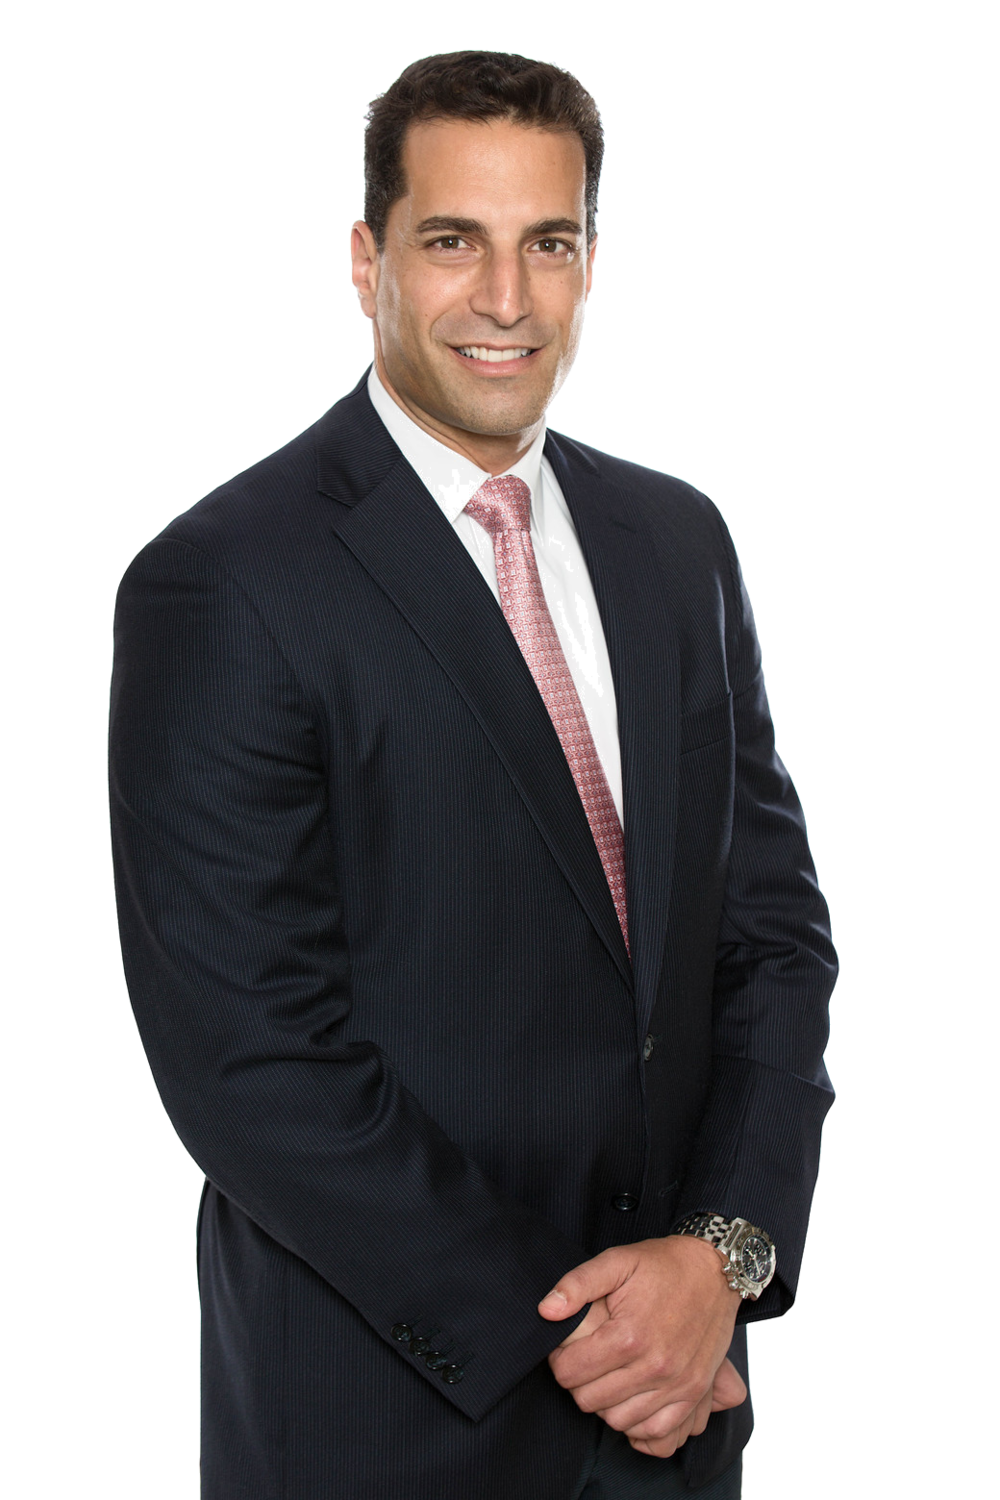 Sagi Shaked Esq. is one of the Top 100 Trial Lawyers in the country as named by The American Trial Lawyers Association. -